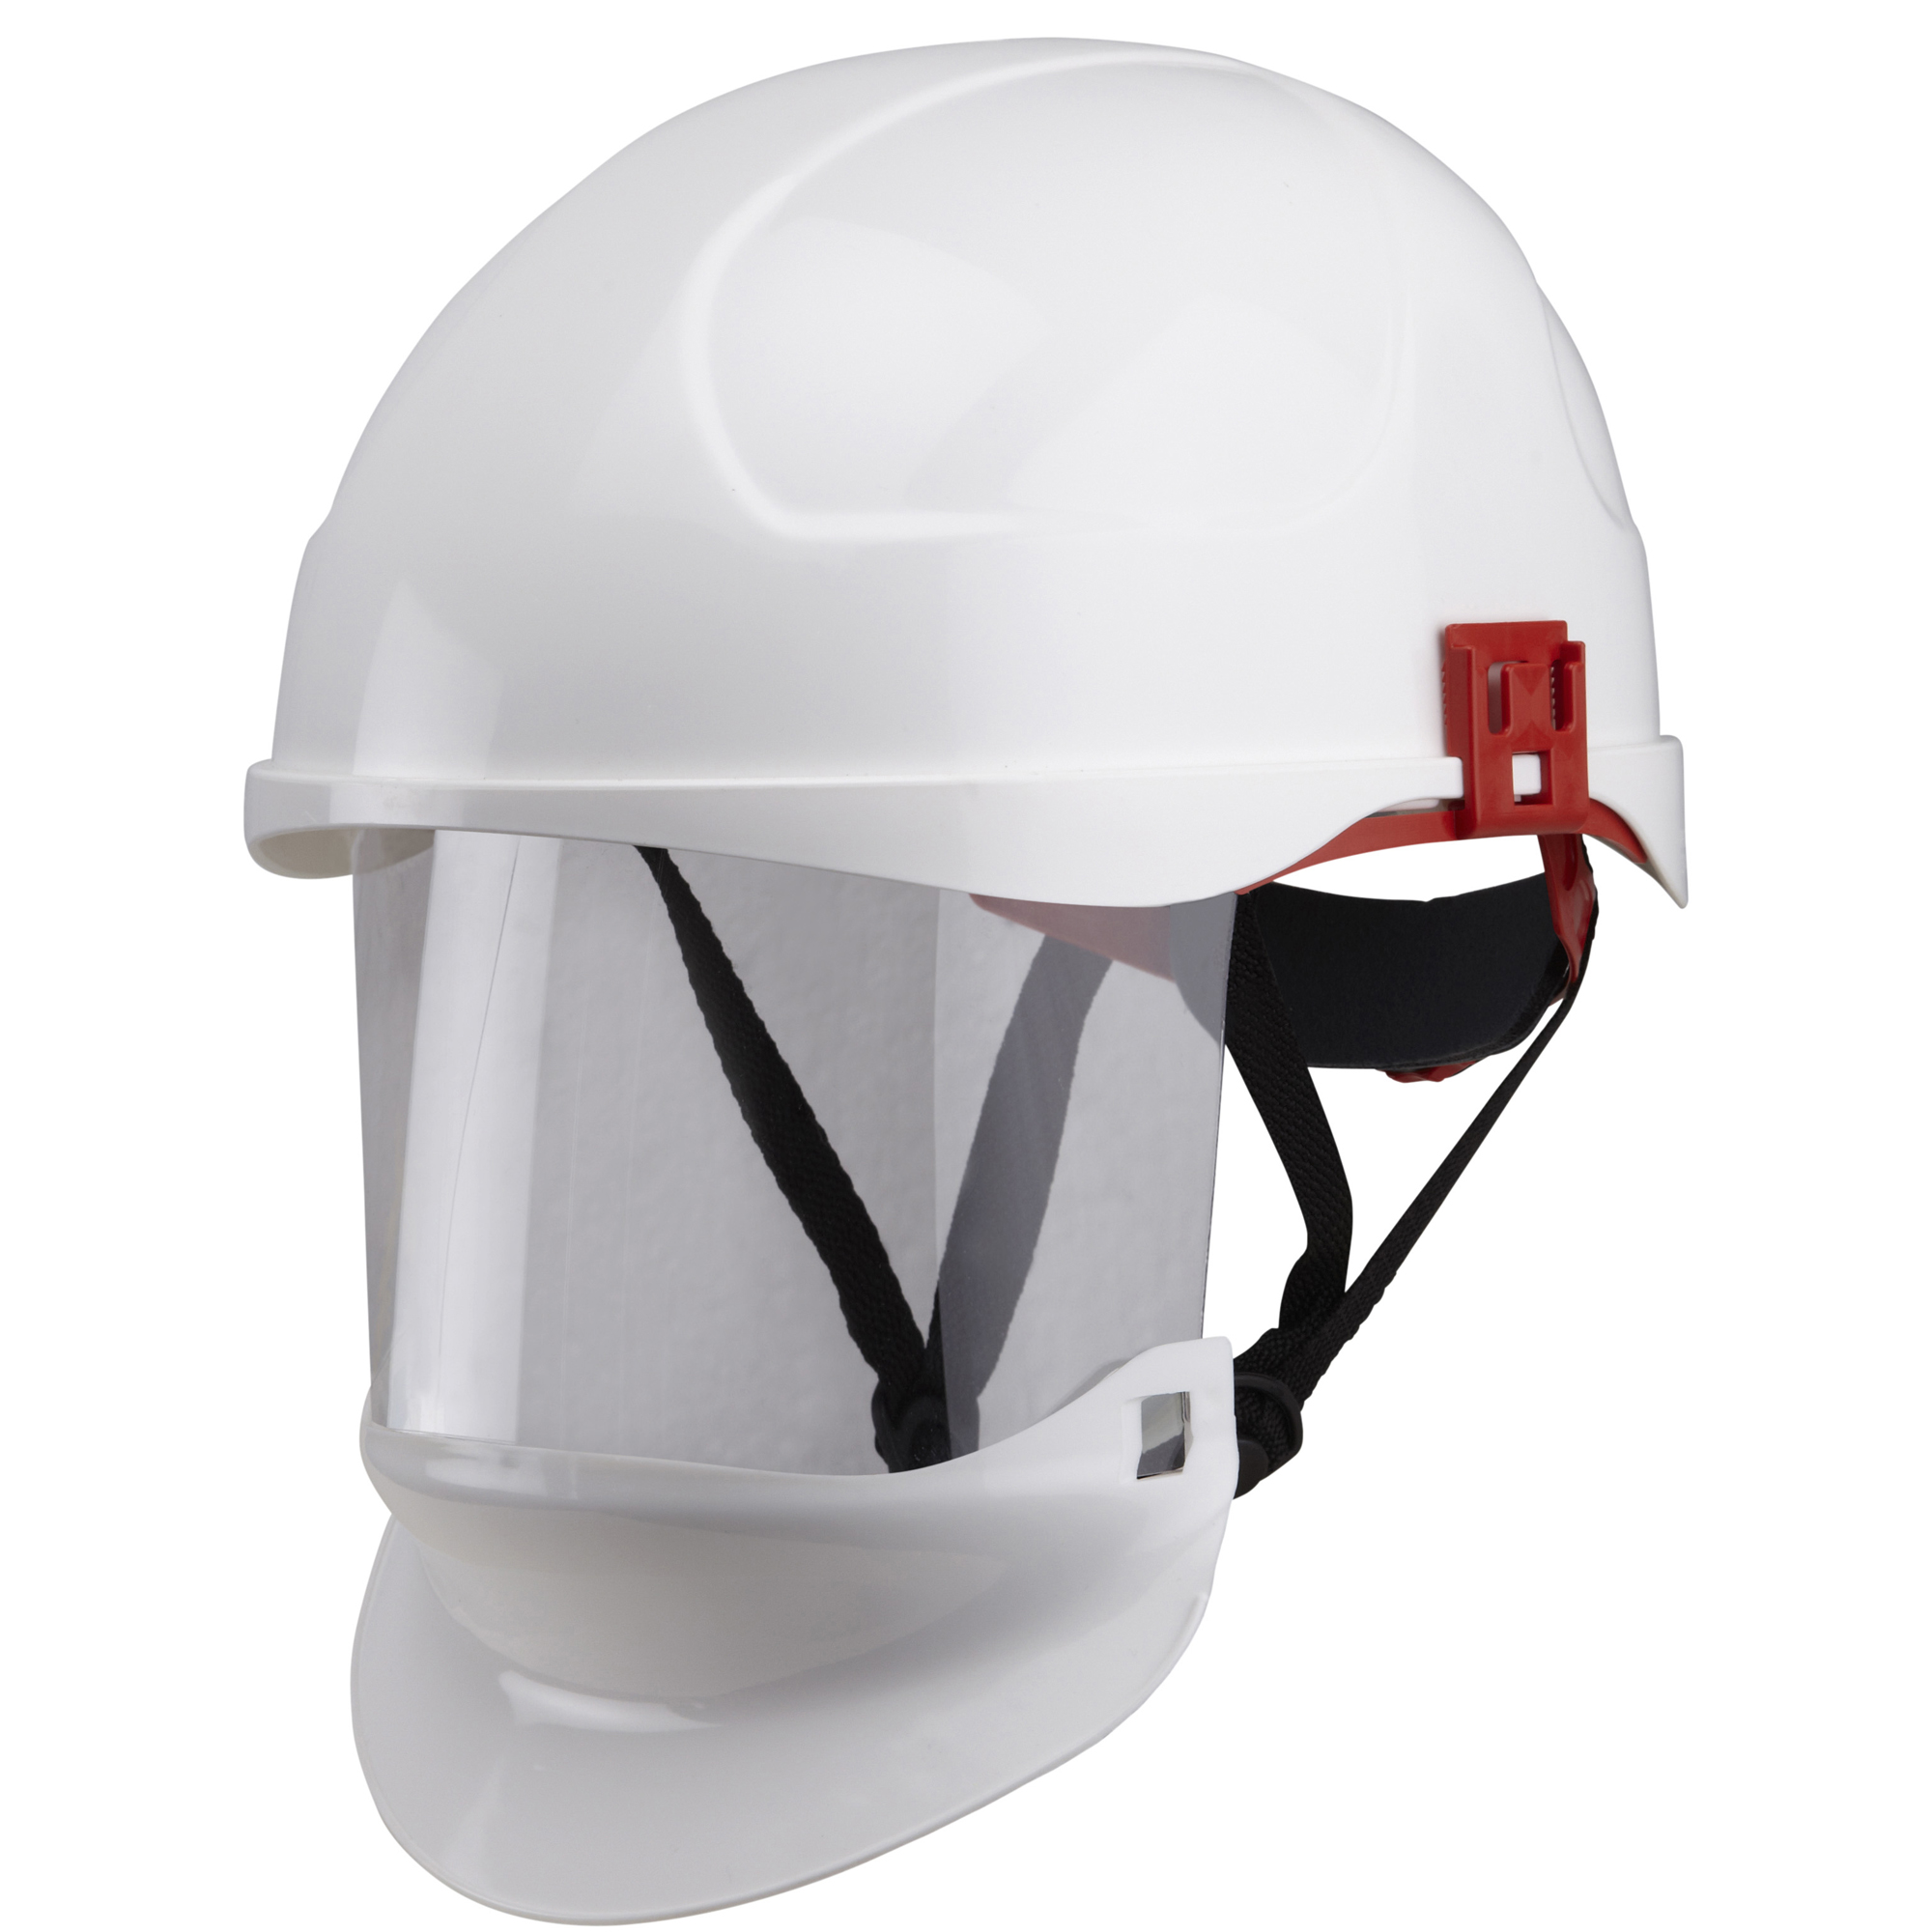 SUBSTATION SAFETY CLASS 1 ARC FLASH HELMET - 3.0 CAL/CM²